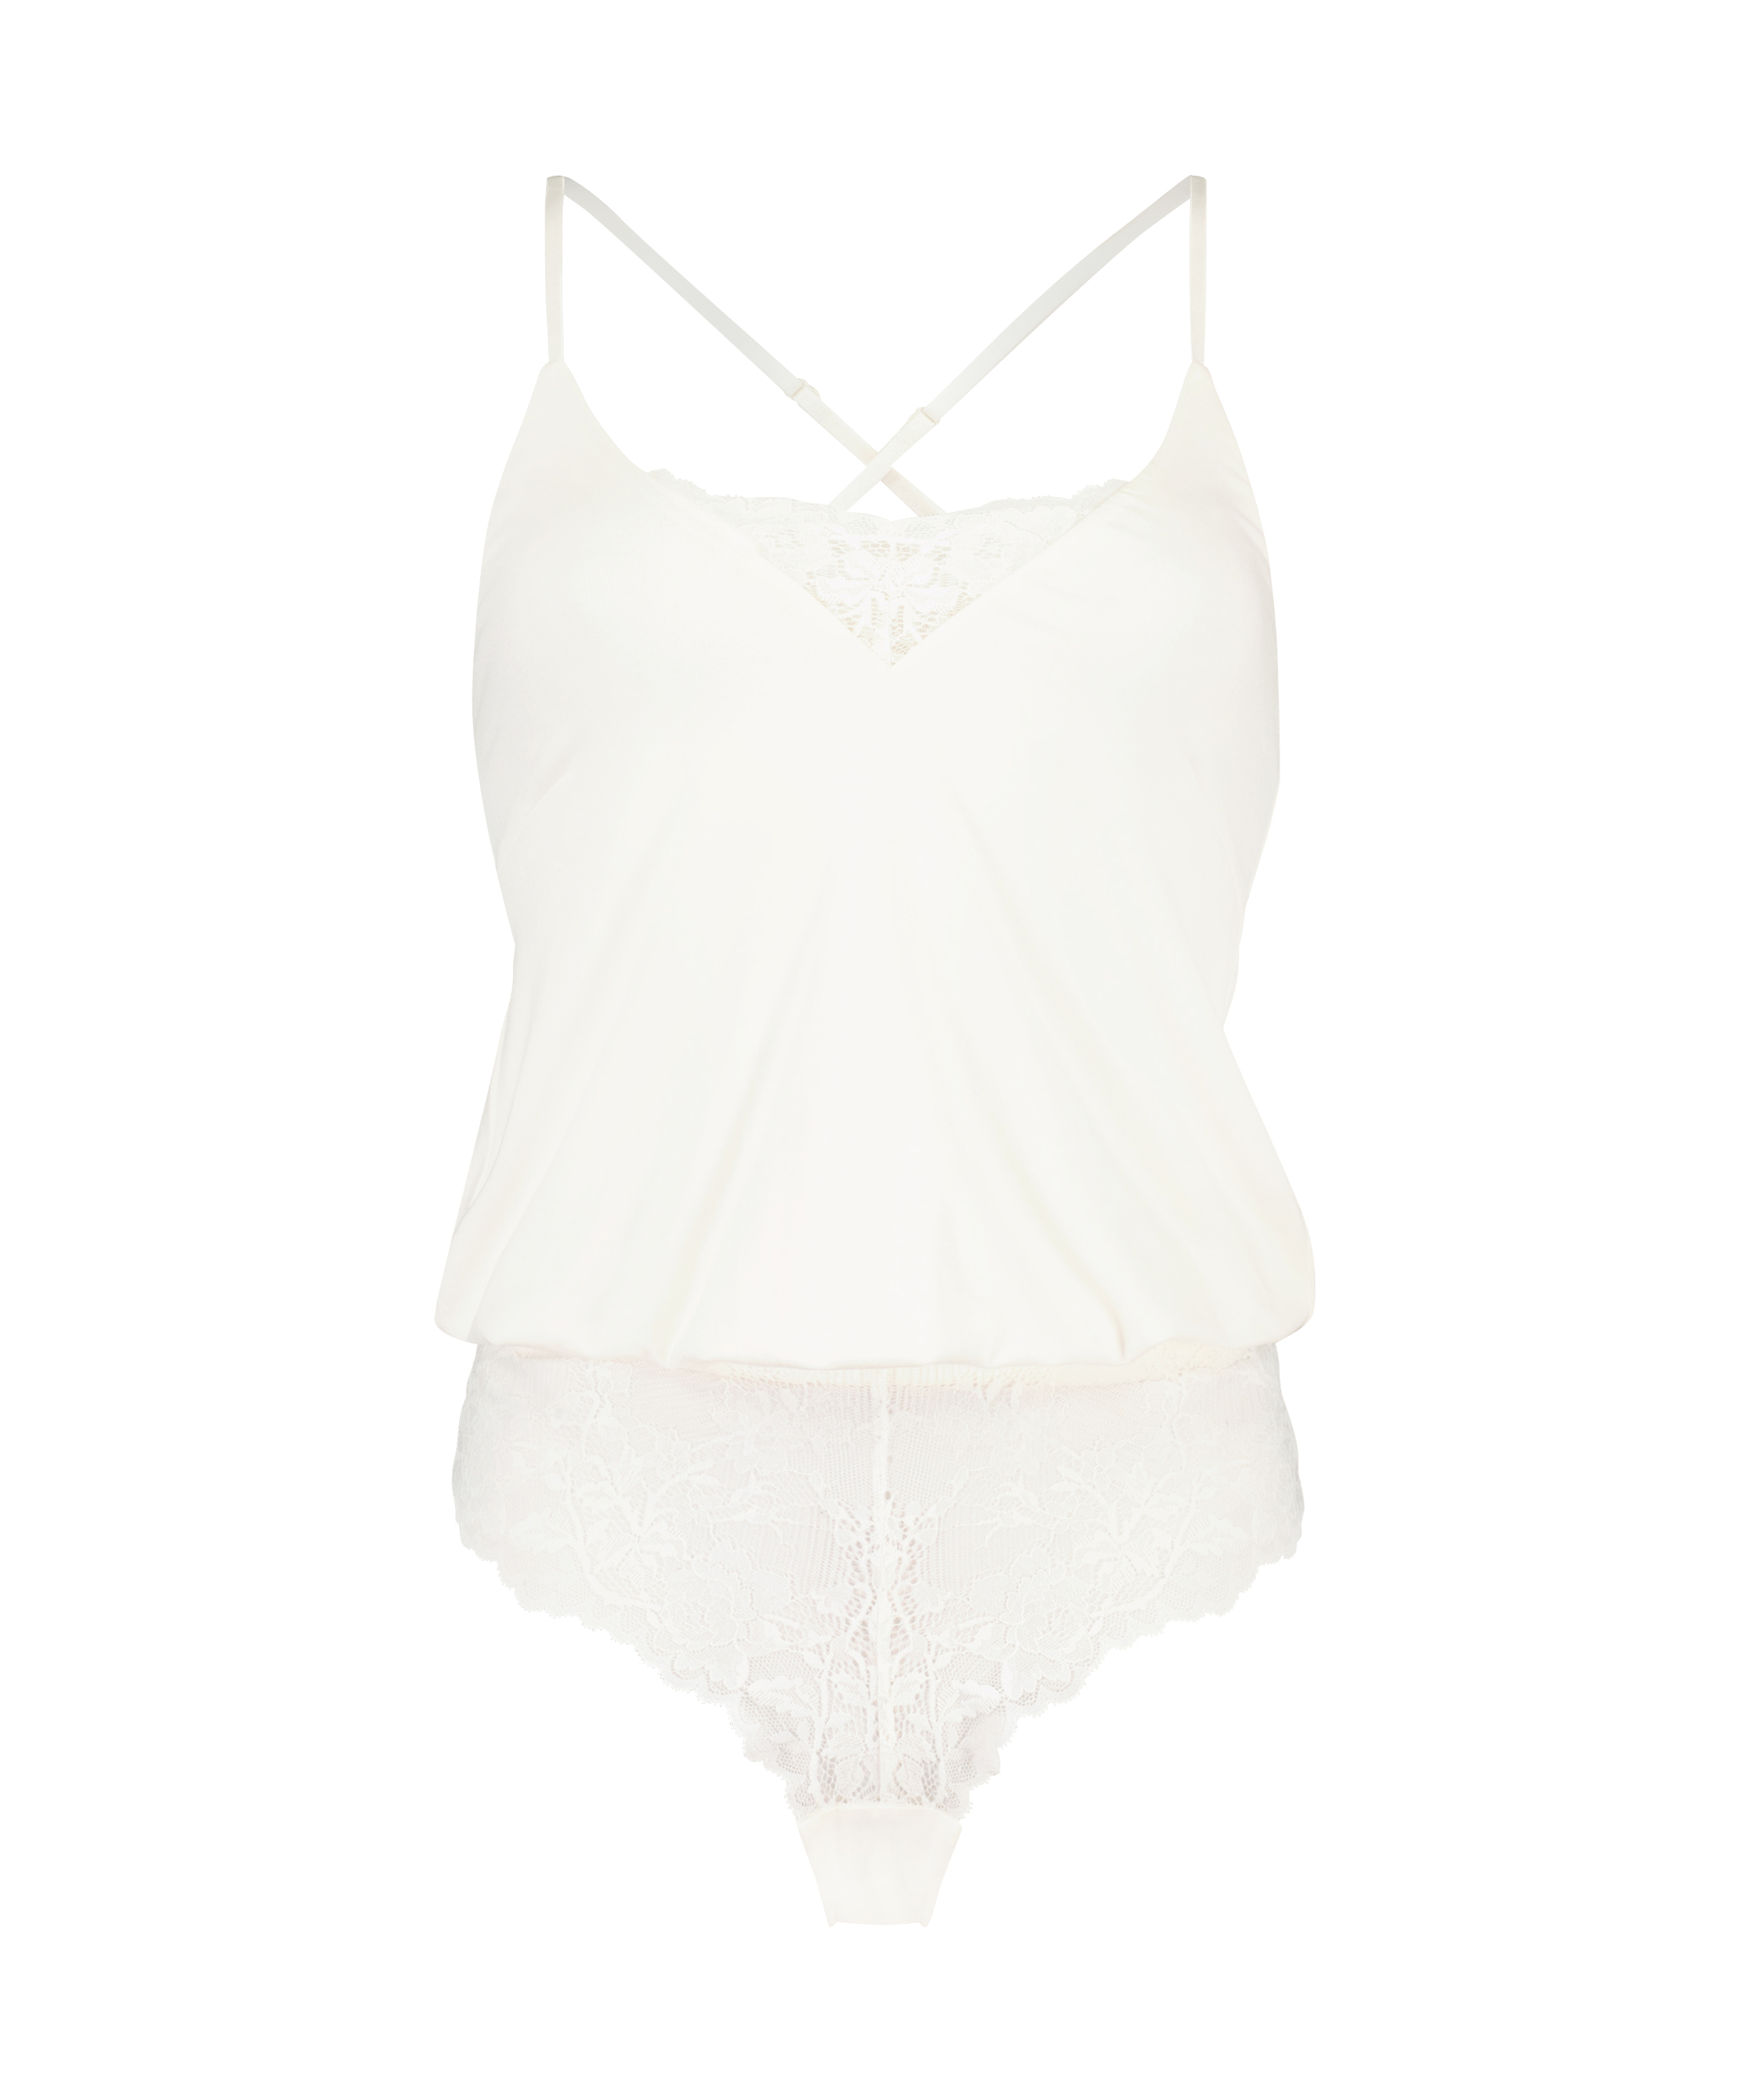 Jersey Lace Teddy, White, main